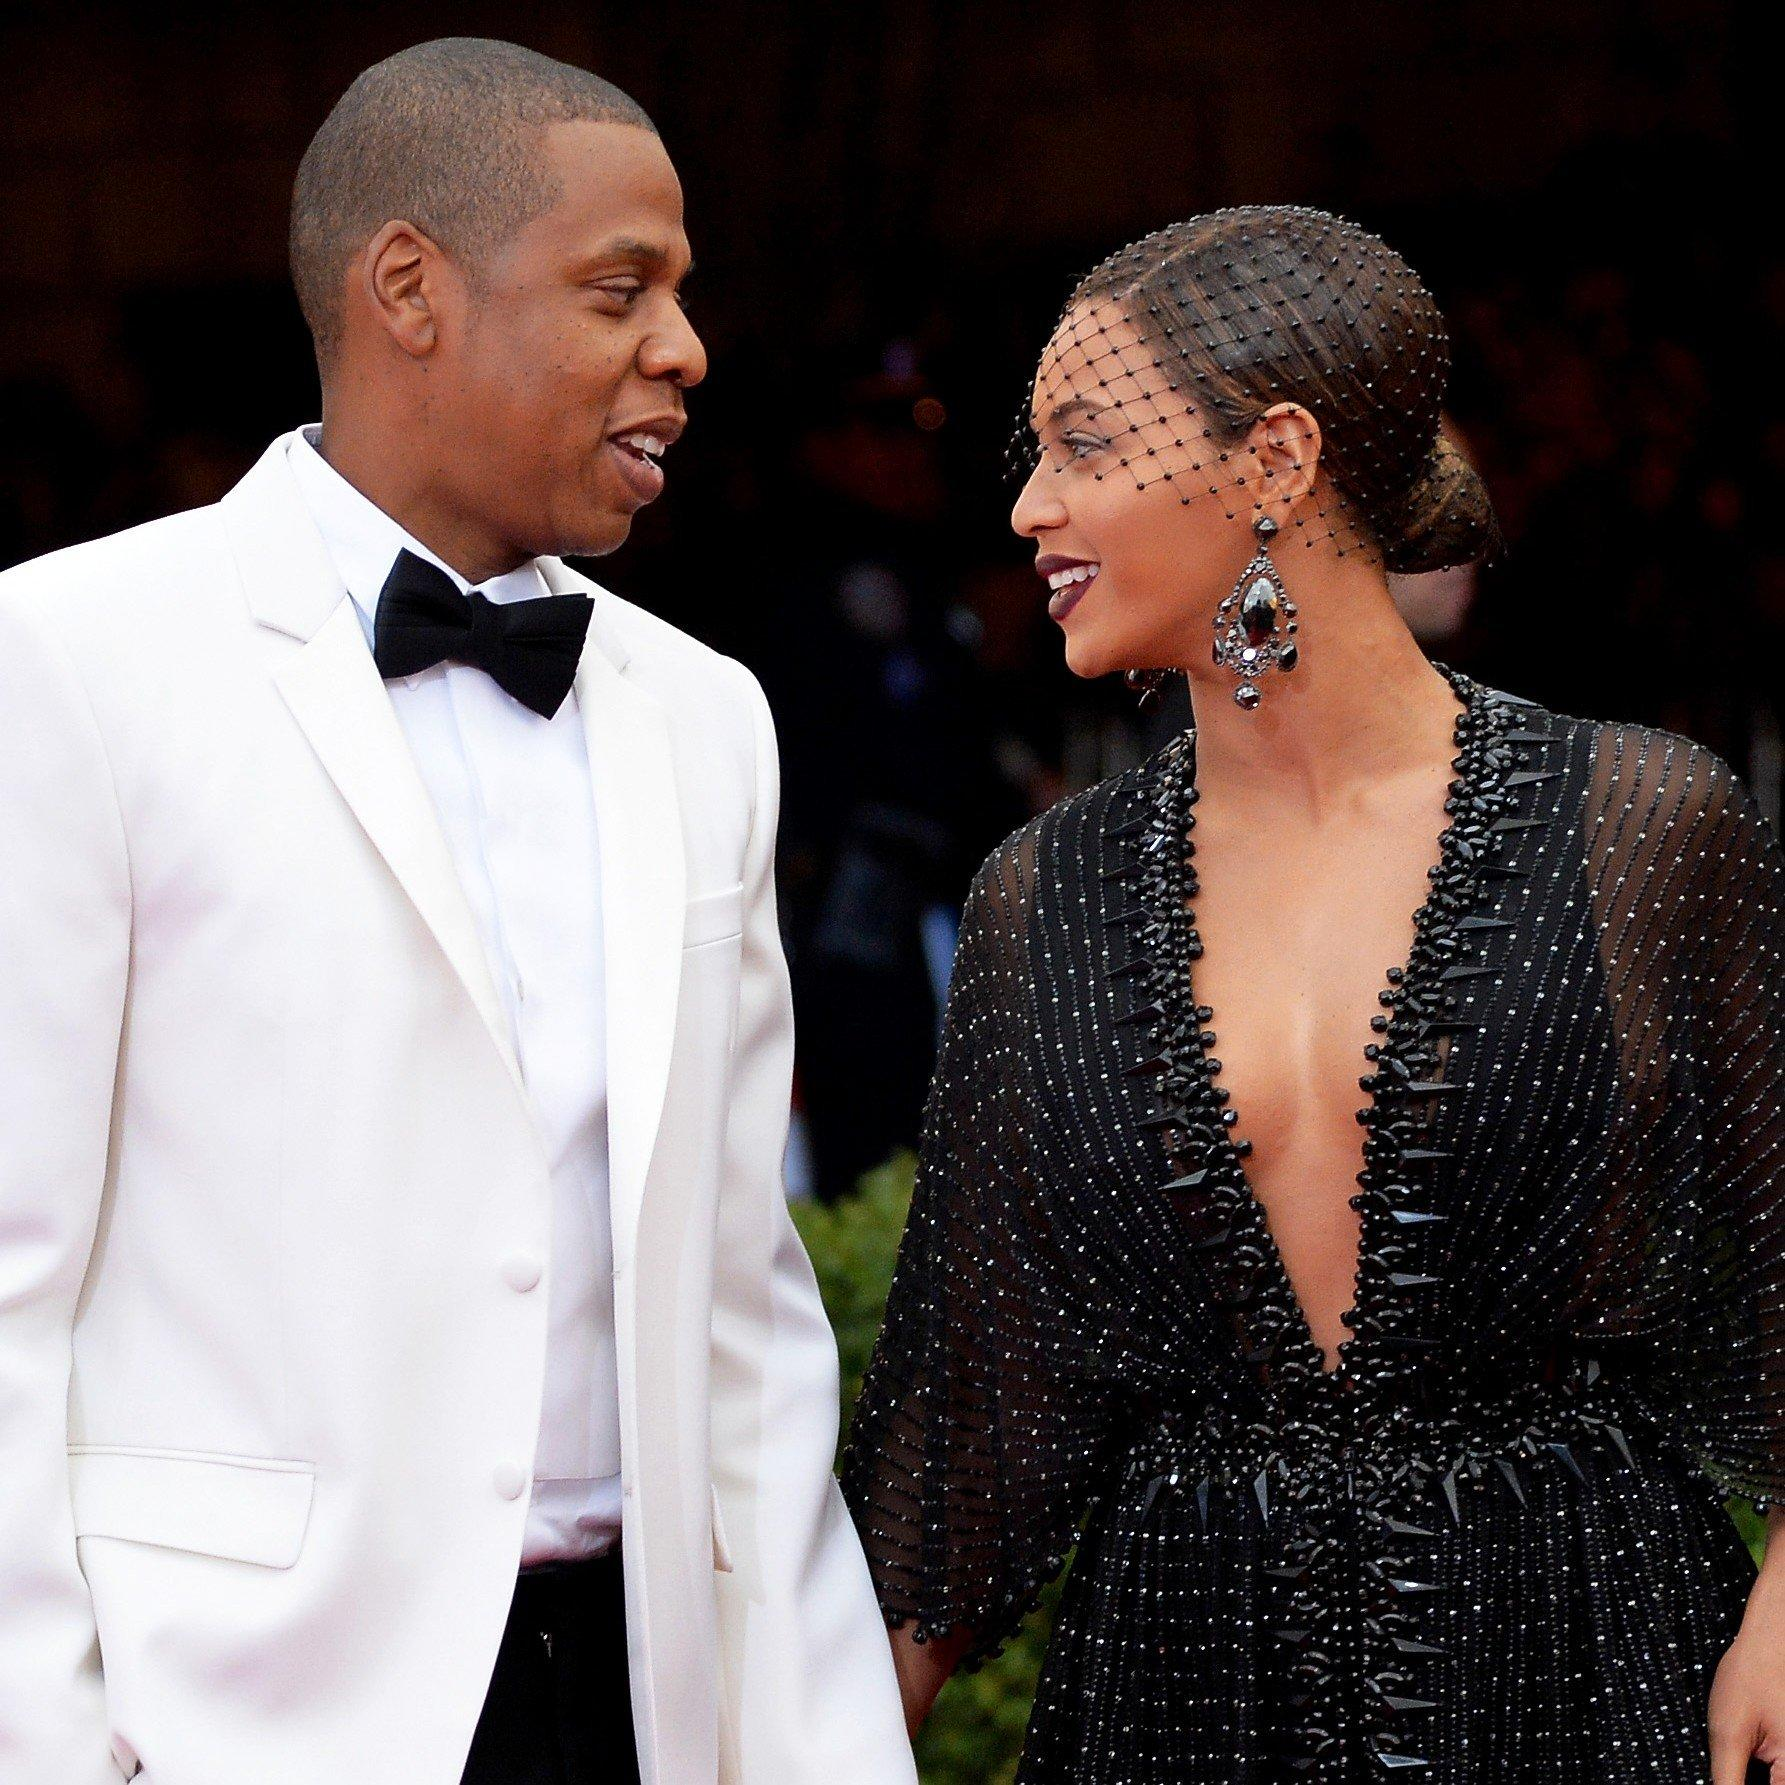 JAY-Z Apologizes For Cheating on Beyoncé in His Emotional New Song ...